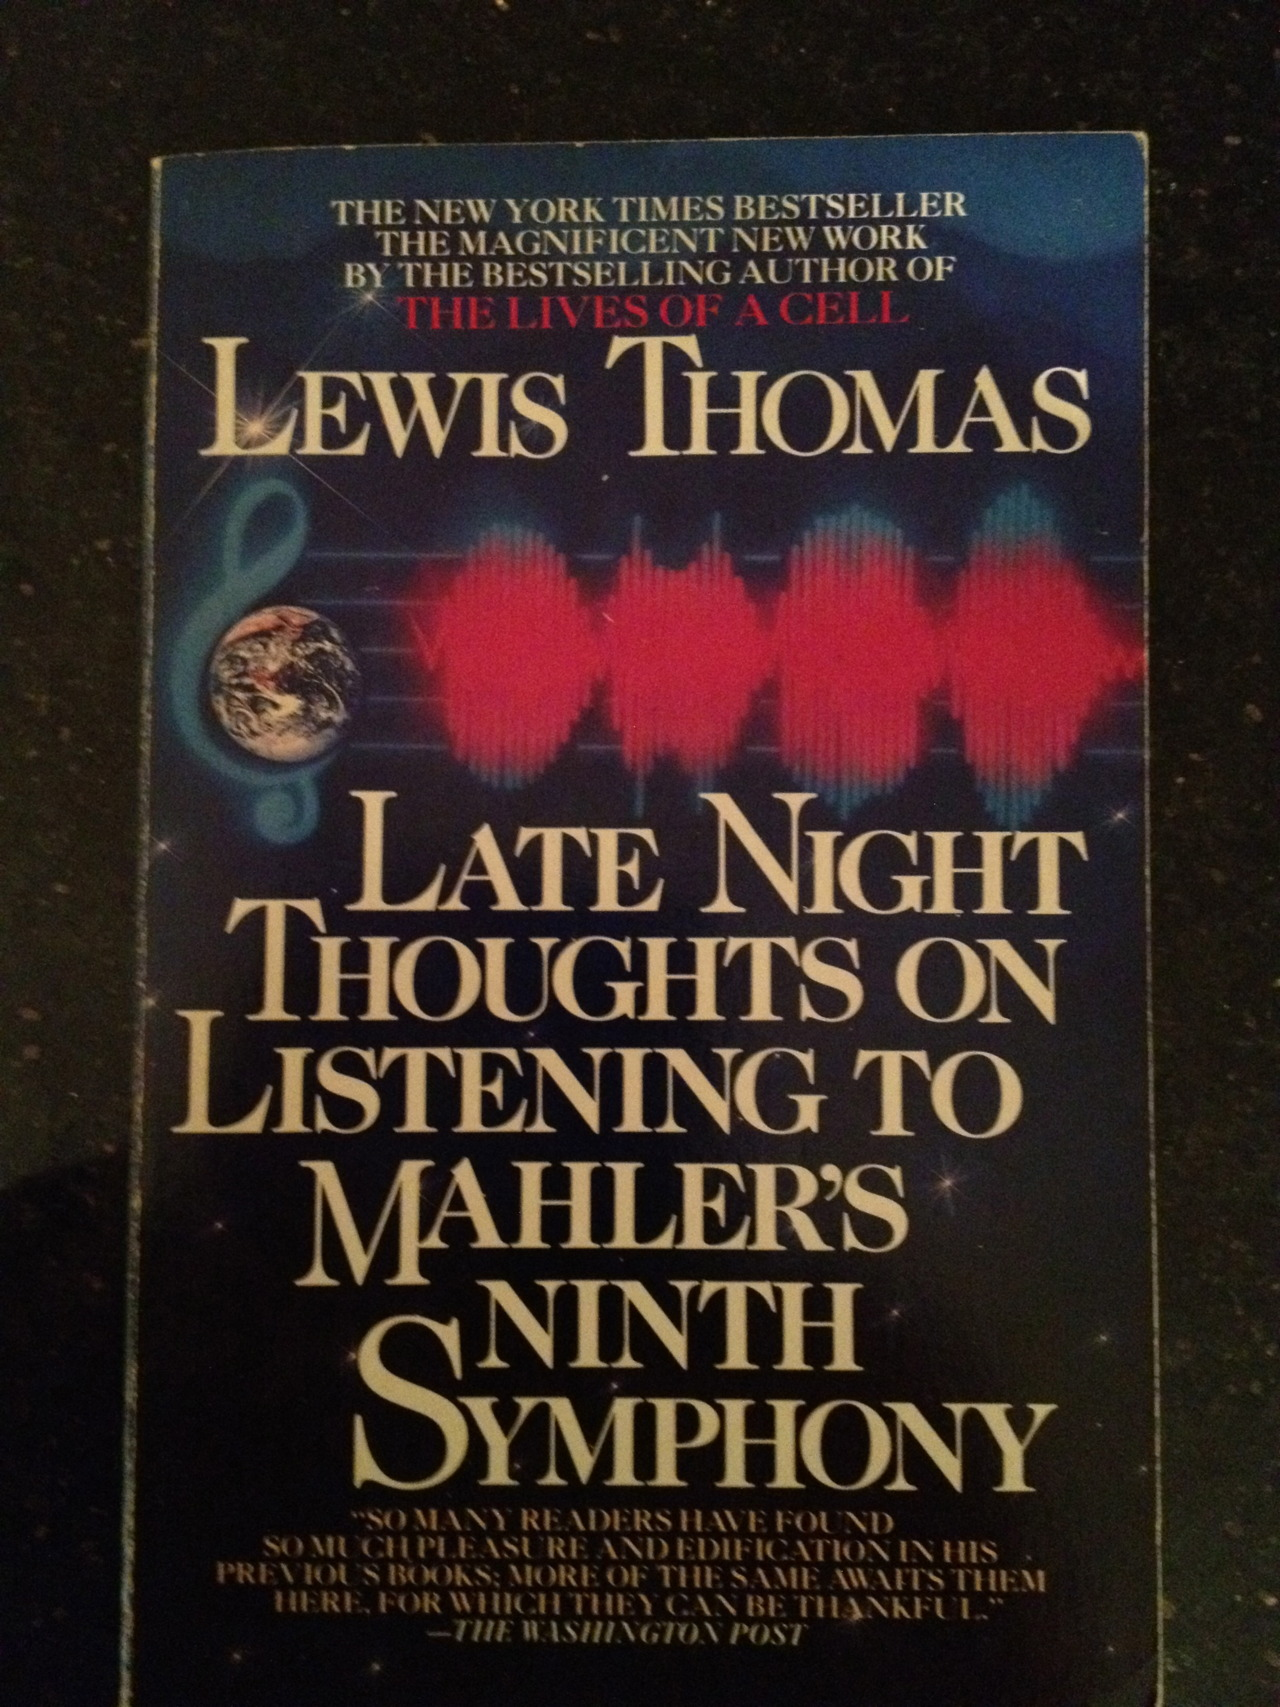 "Dr. Lewis Thomas  achieved some fame as an essayist for The New England Journal of Medicine, perhaps most famously with the collection ""Lives of a Cell."" But for whatever reason it was ""Late Night Thoughts on Listening to Mahler's Ninth Symphony"" that has survived on my shelves since I purchased it in paperback some 28 years ago. I remember being affected by  his death in 1993 , perhaps because mortality and doom was so often his topic, and I was a young man in my 20s and therefore overly obsessed with both topics. My mother had died in middle age right after I graduated from college, and I imagined my own death could not be far off. This book opens with a meditation on Hiroshima and ends with the title essay, about the threat of nuclear destruction from an exchange of missiles between America and the Soviet Union. This was a real prospect that we lived with every day, and it was a given belief among people in my generation that we would probably all die in a horrific world explosion some day. His late night thoughts on the missiles are bracing, and thankfully he has been proven wrong so far by the unexpected turns in history that would come in the years after he wrote these words in the early 1980s:     ""I am old enough by this time to be used to the notion of dying, saddened by the glimpse when it has occurred but only transiently knocked down, able to regain my feet quickly at the thought of continuity, any day. I have acquired and held in affection until very recently another sideline of an idea which serves me well at dark times: the life of the earth is the same as the life of an organism: the mind contains an infinite number of thoughts and memories: when I reach my time I may find myself still hanging around in some ort of midair, one of those small thoughts, drawn back into the memory of the earth: in that peculiar sense I will be alive. Now all that has changed. I cannot think that way anymore. Not while those things are still in place, aimed everywhere, ready for launching."""